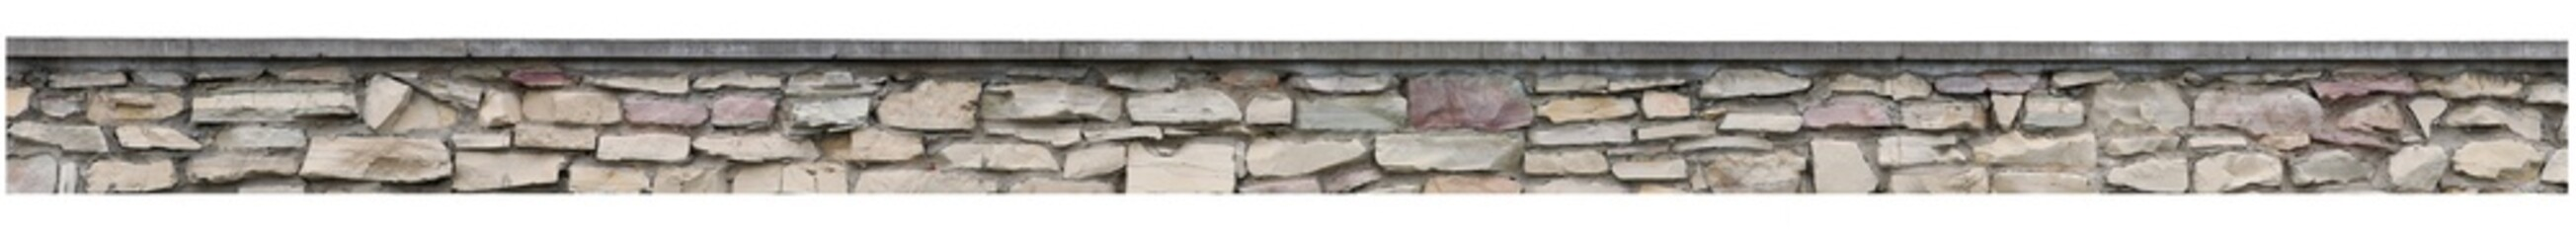 Stone fence garden rock wall isolated old brick stack panorama panoramic stonewall pattern closeup large limestone texture lined slate slab textured dolomite sedimentary beige grey red yellow bricks